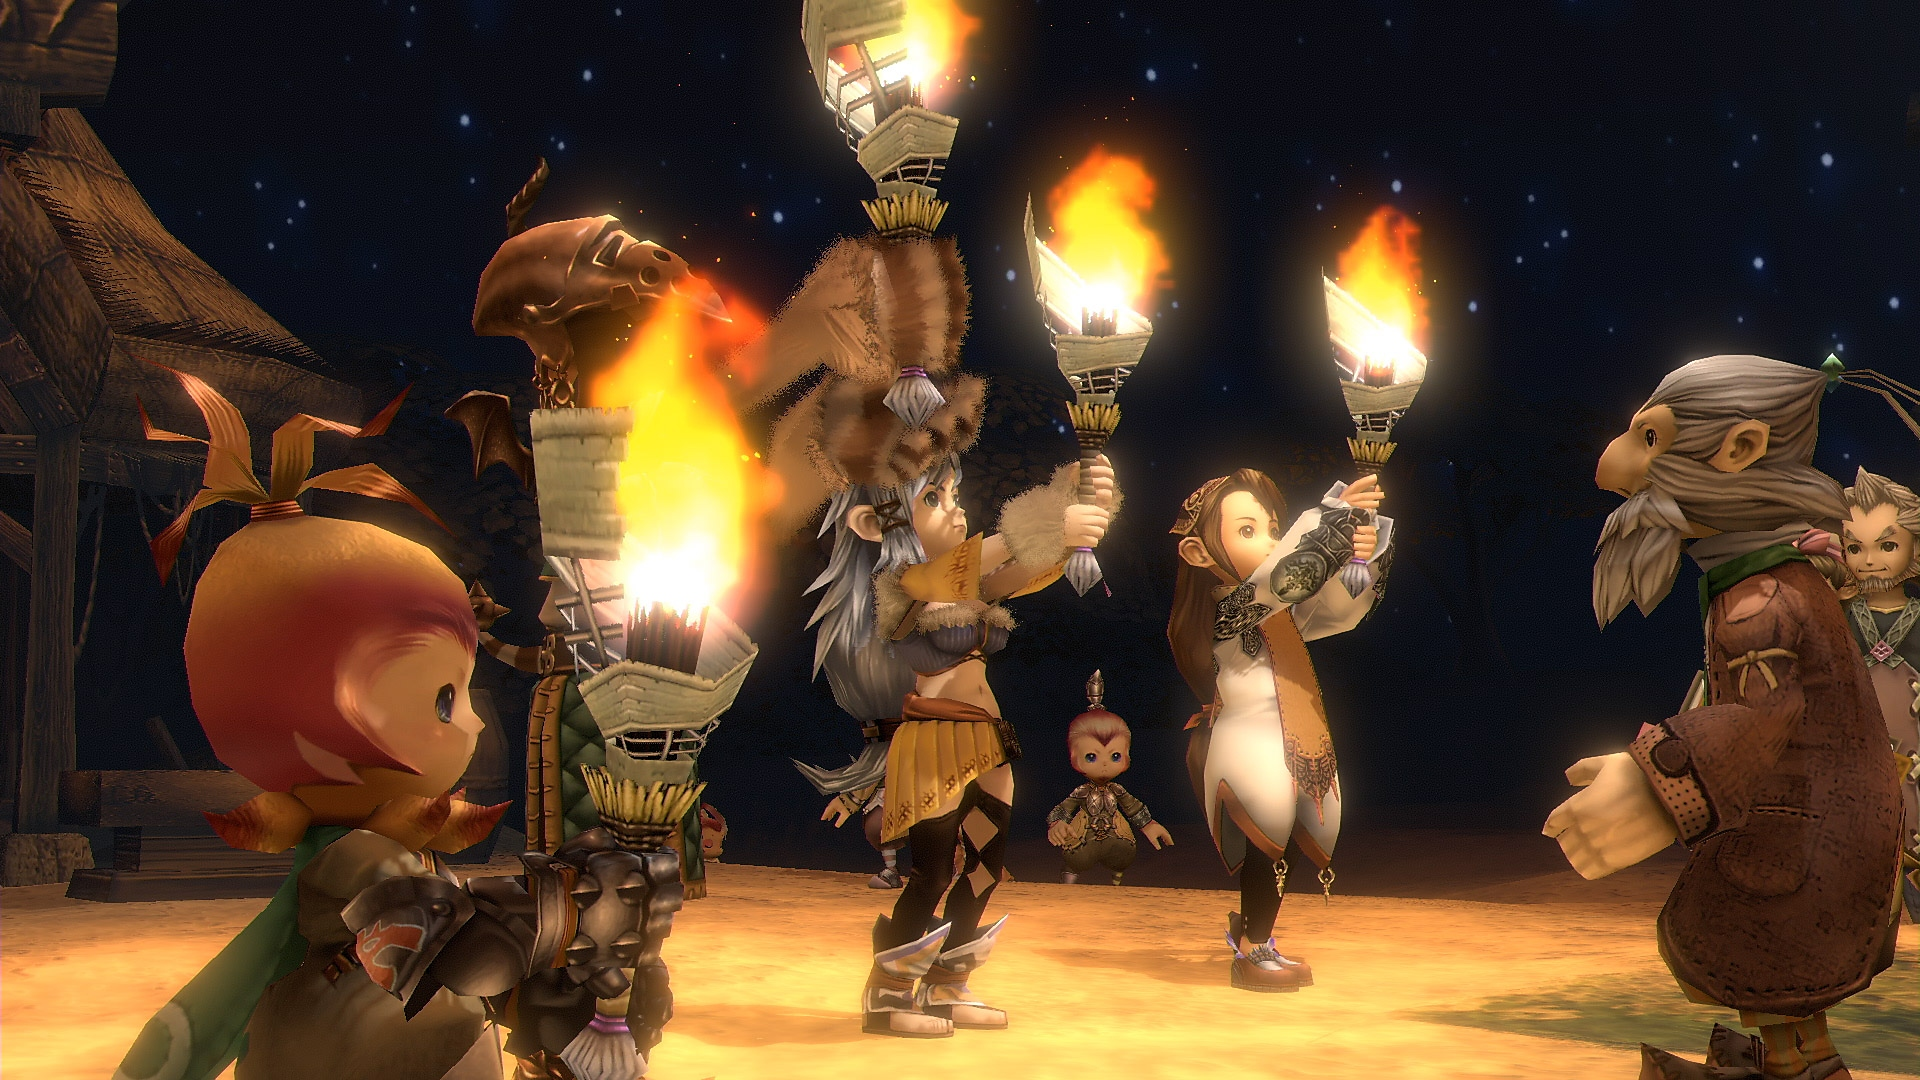 Final Fantasy Crystal Chronicles remastered edition új játékmenet képernyőkép